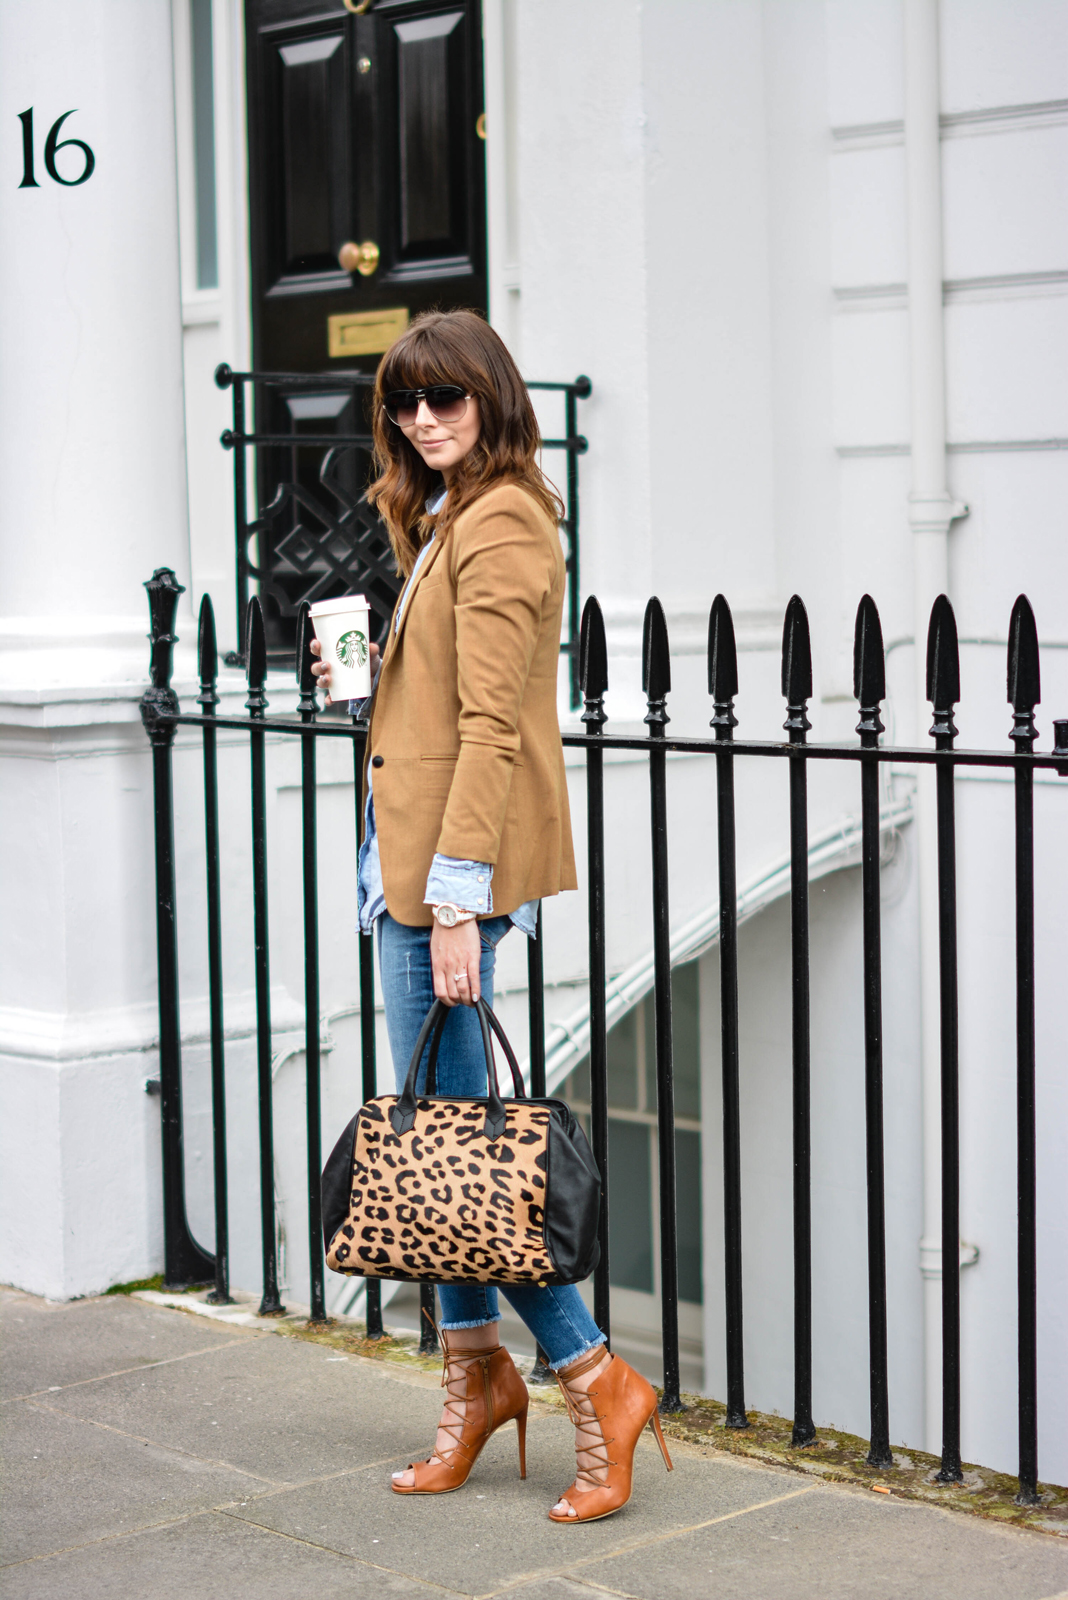 EJSTYLE - Emma Hill, Sante Shoes tan leather lace up sandals, raw hem ripped River Island skinny jeans, Forever 21 Camel blazer, Denim shirt, Leopard print ponyskin leather bag, double denim outfit, london street sty